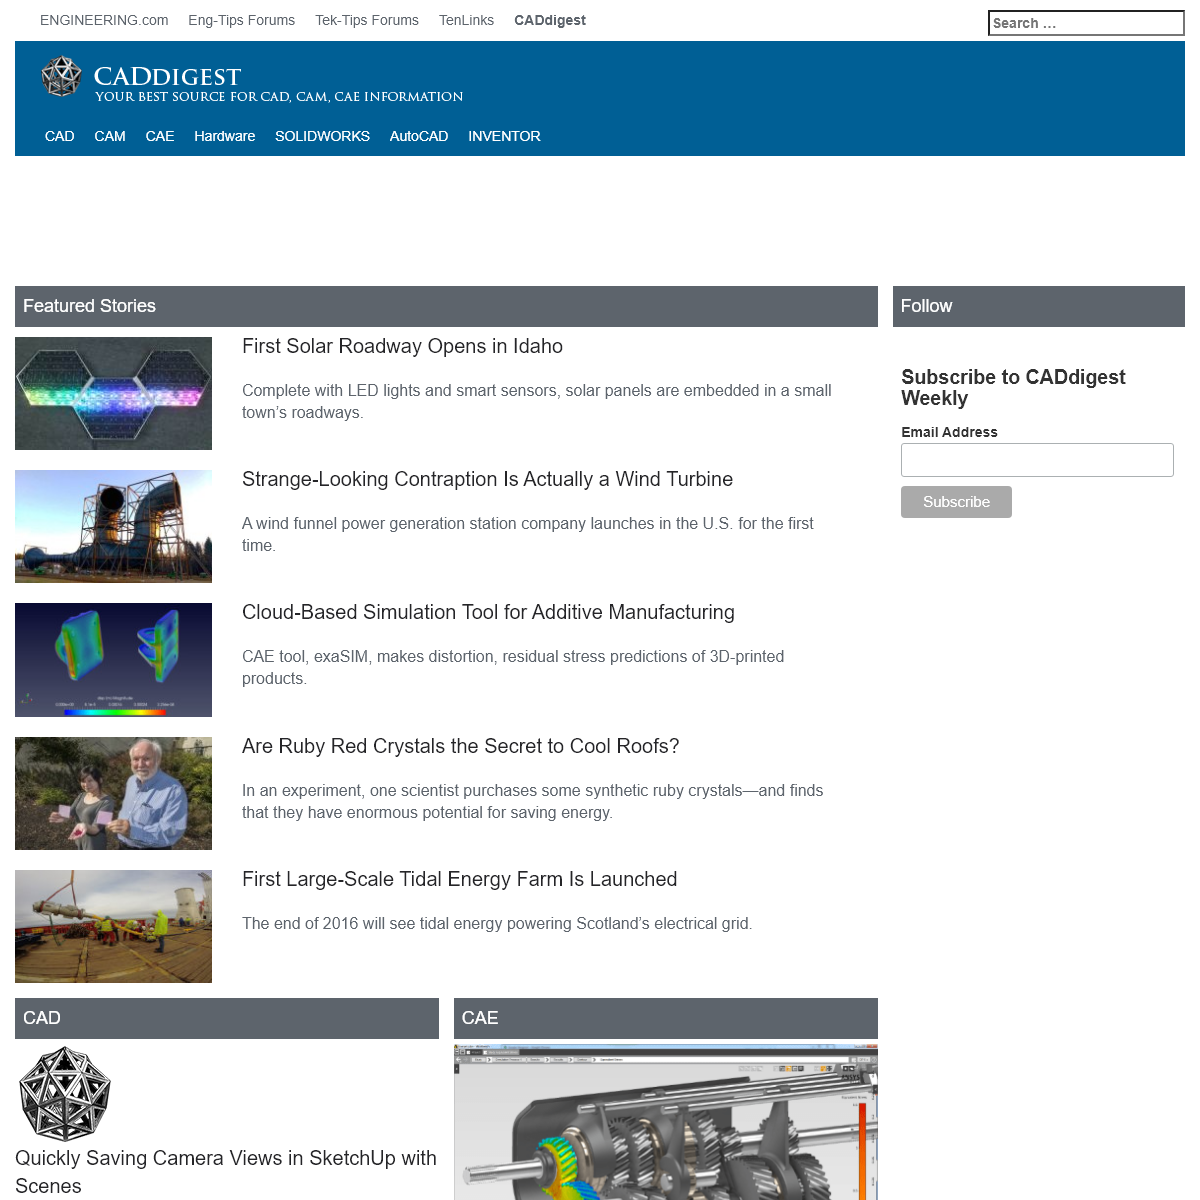 CADdigest - Your best source for CAD, CAM and CAE articles